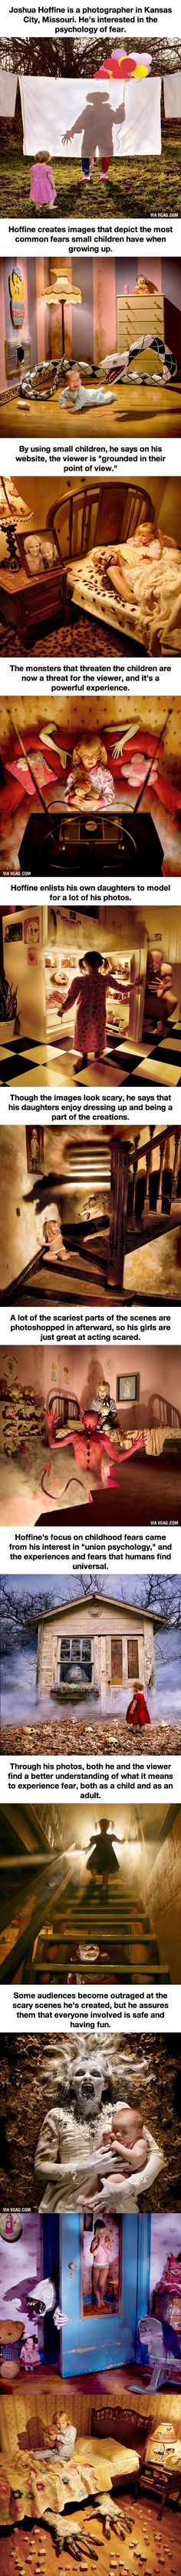 12 Seriously Disturbing Pictures Of Children's Nightmares